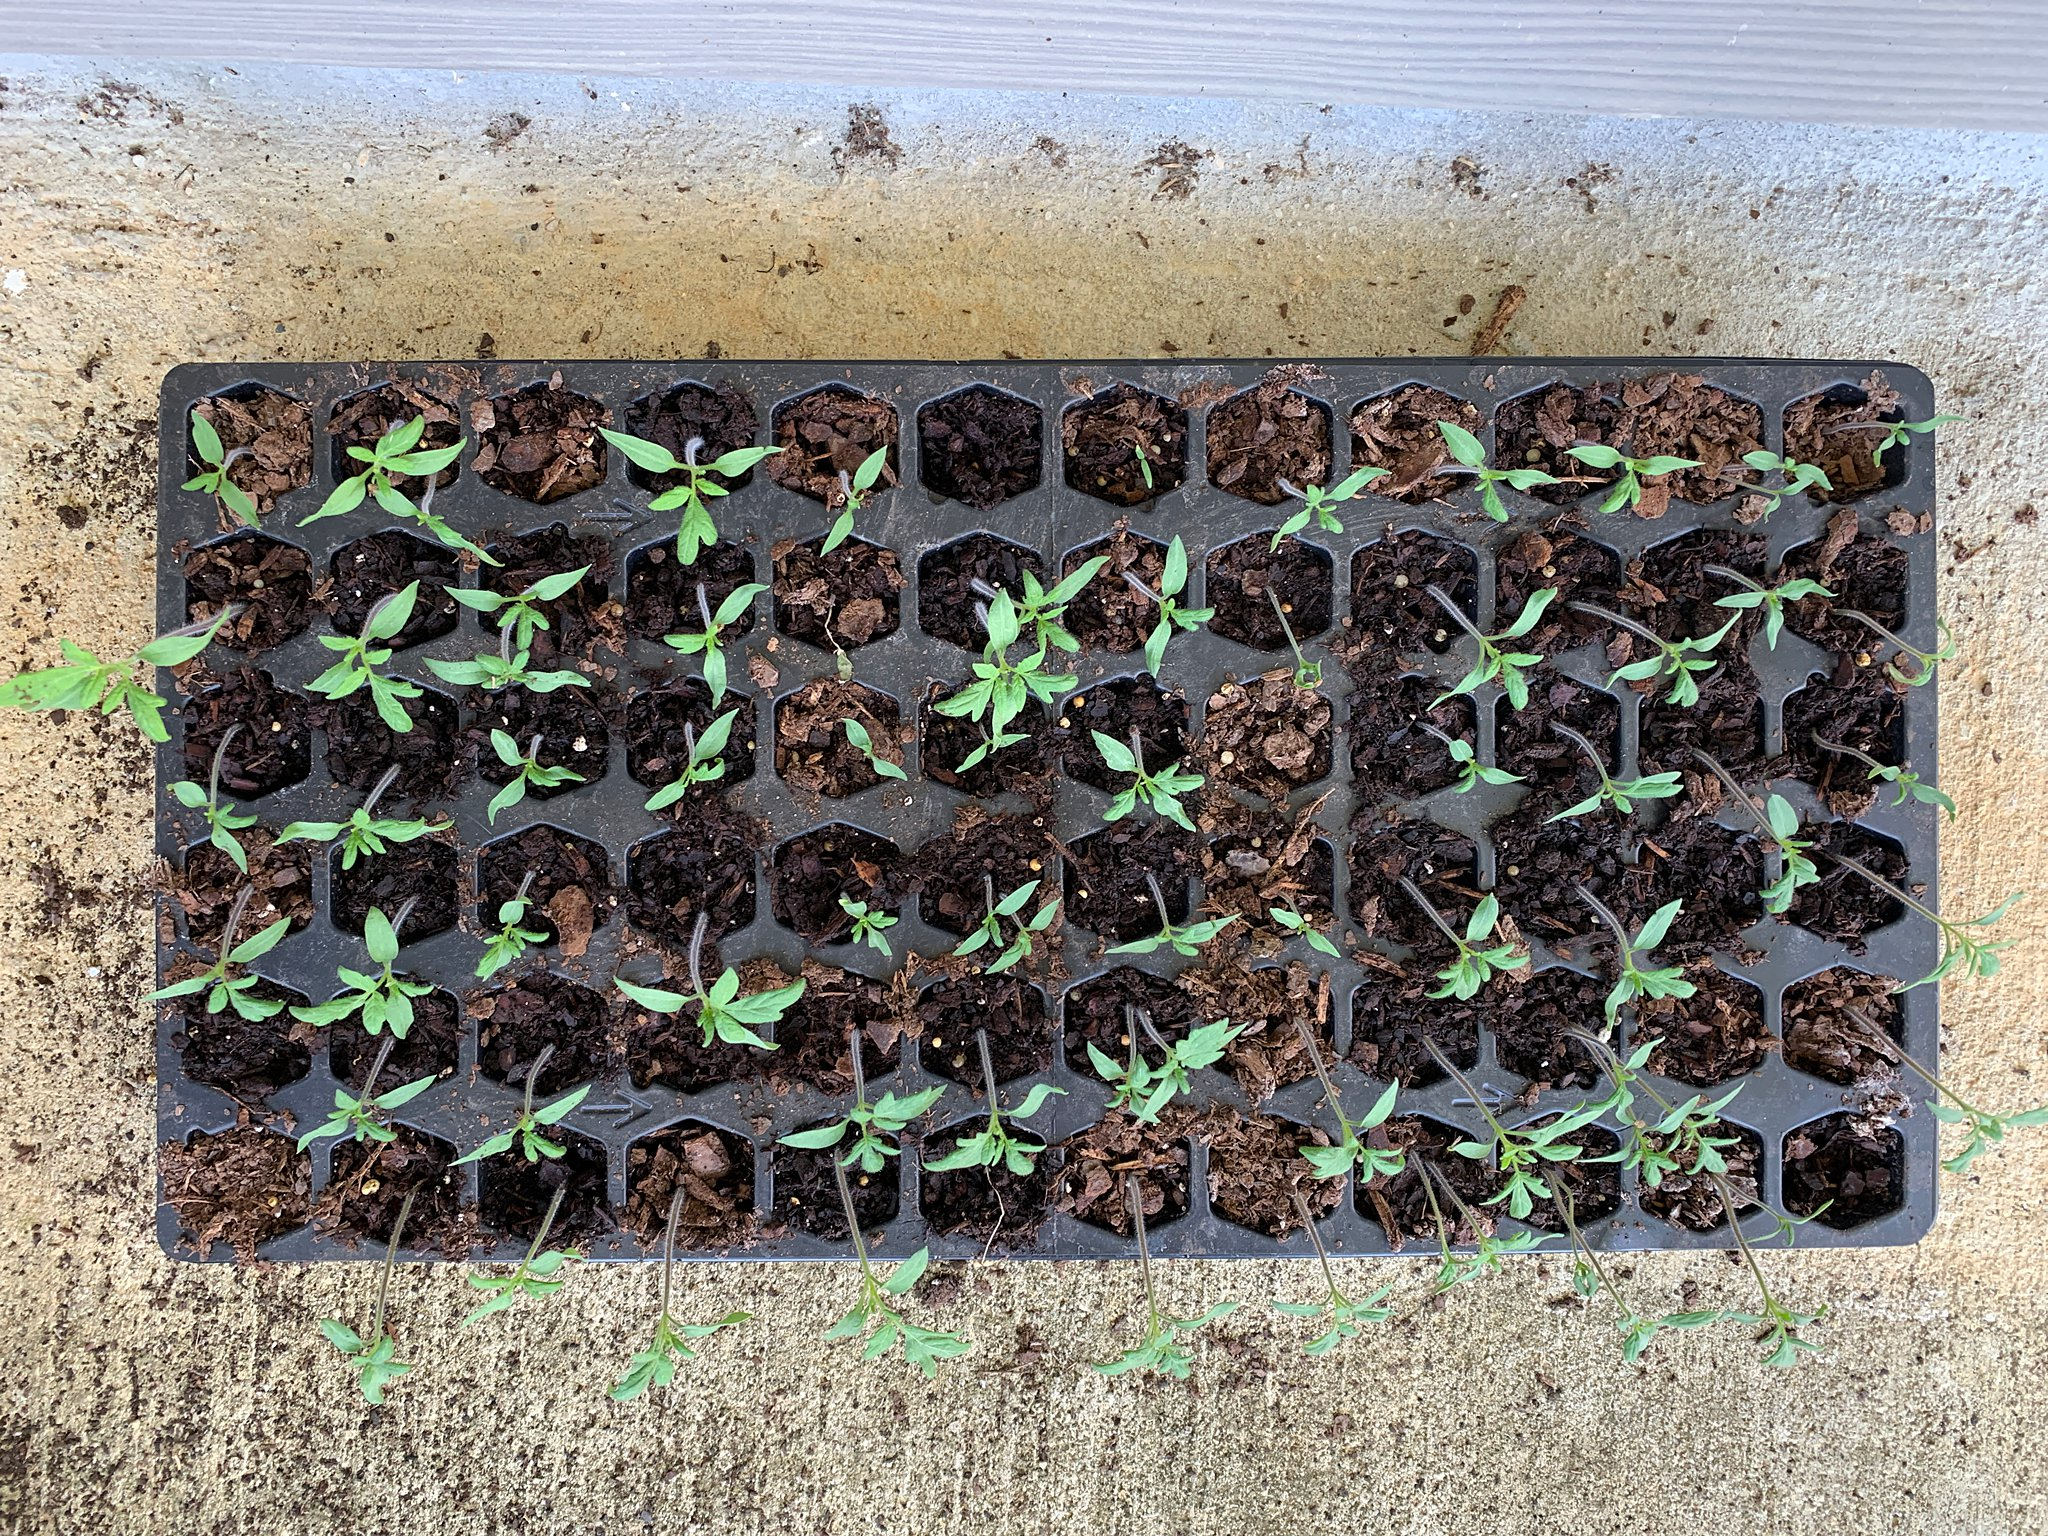 small tomato plants started from seeds